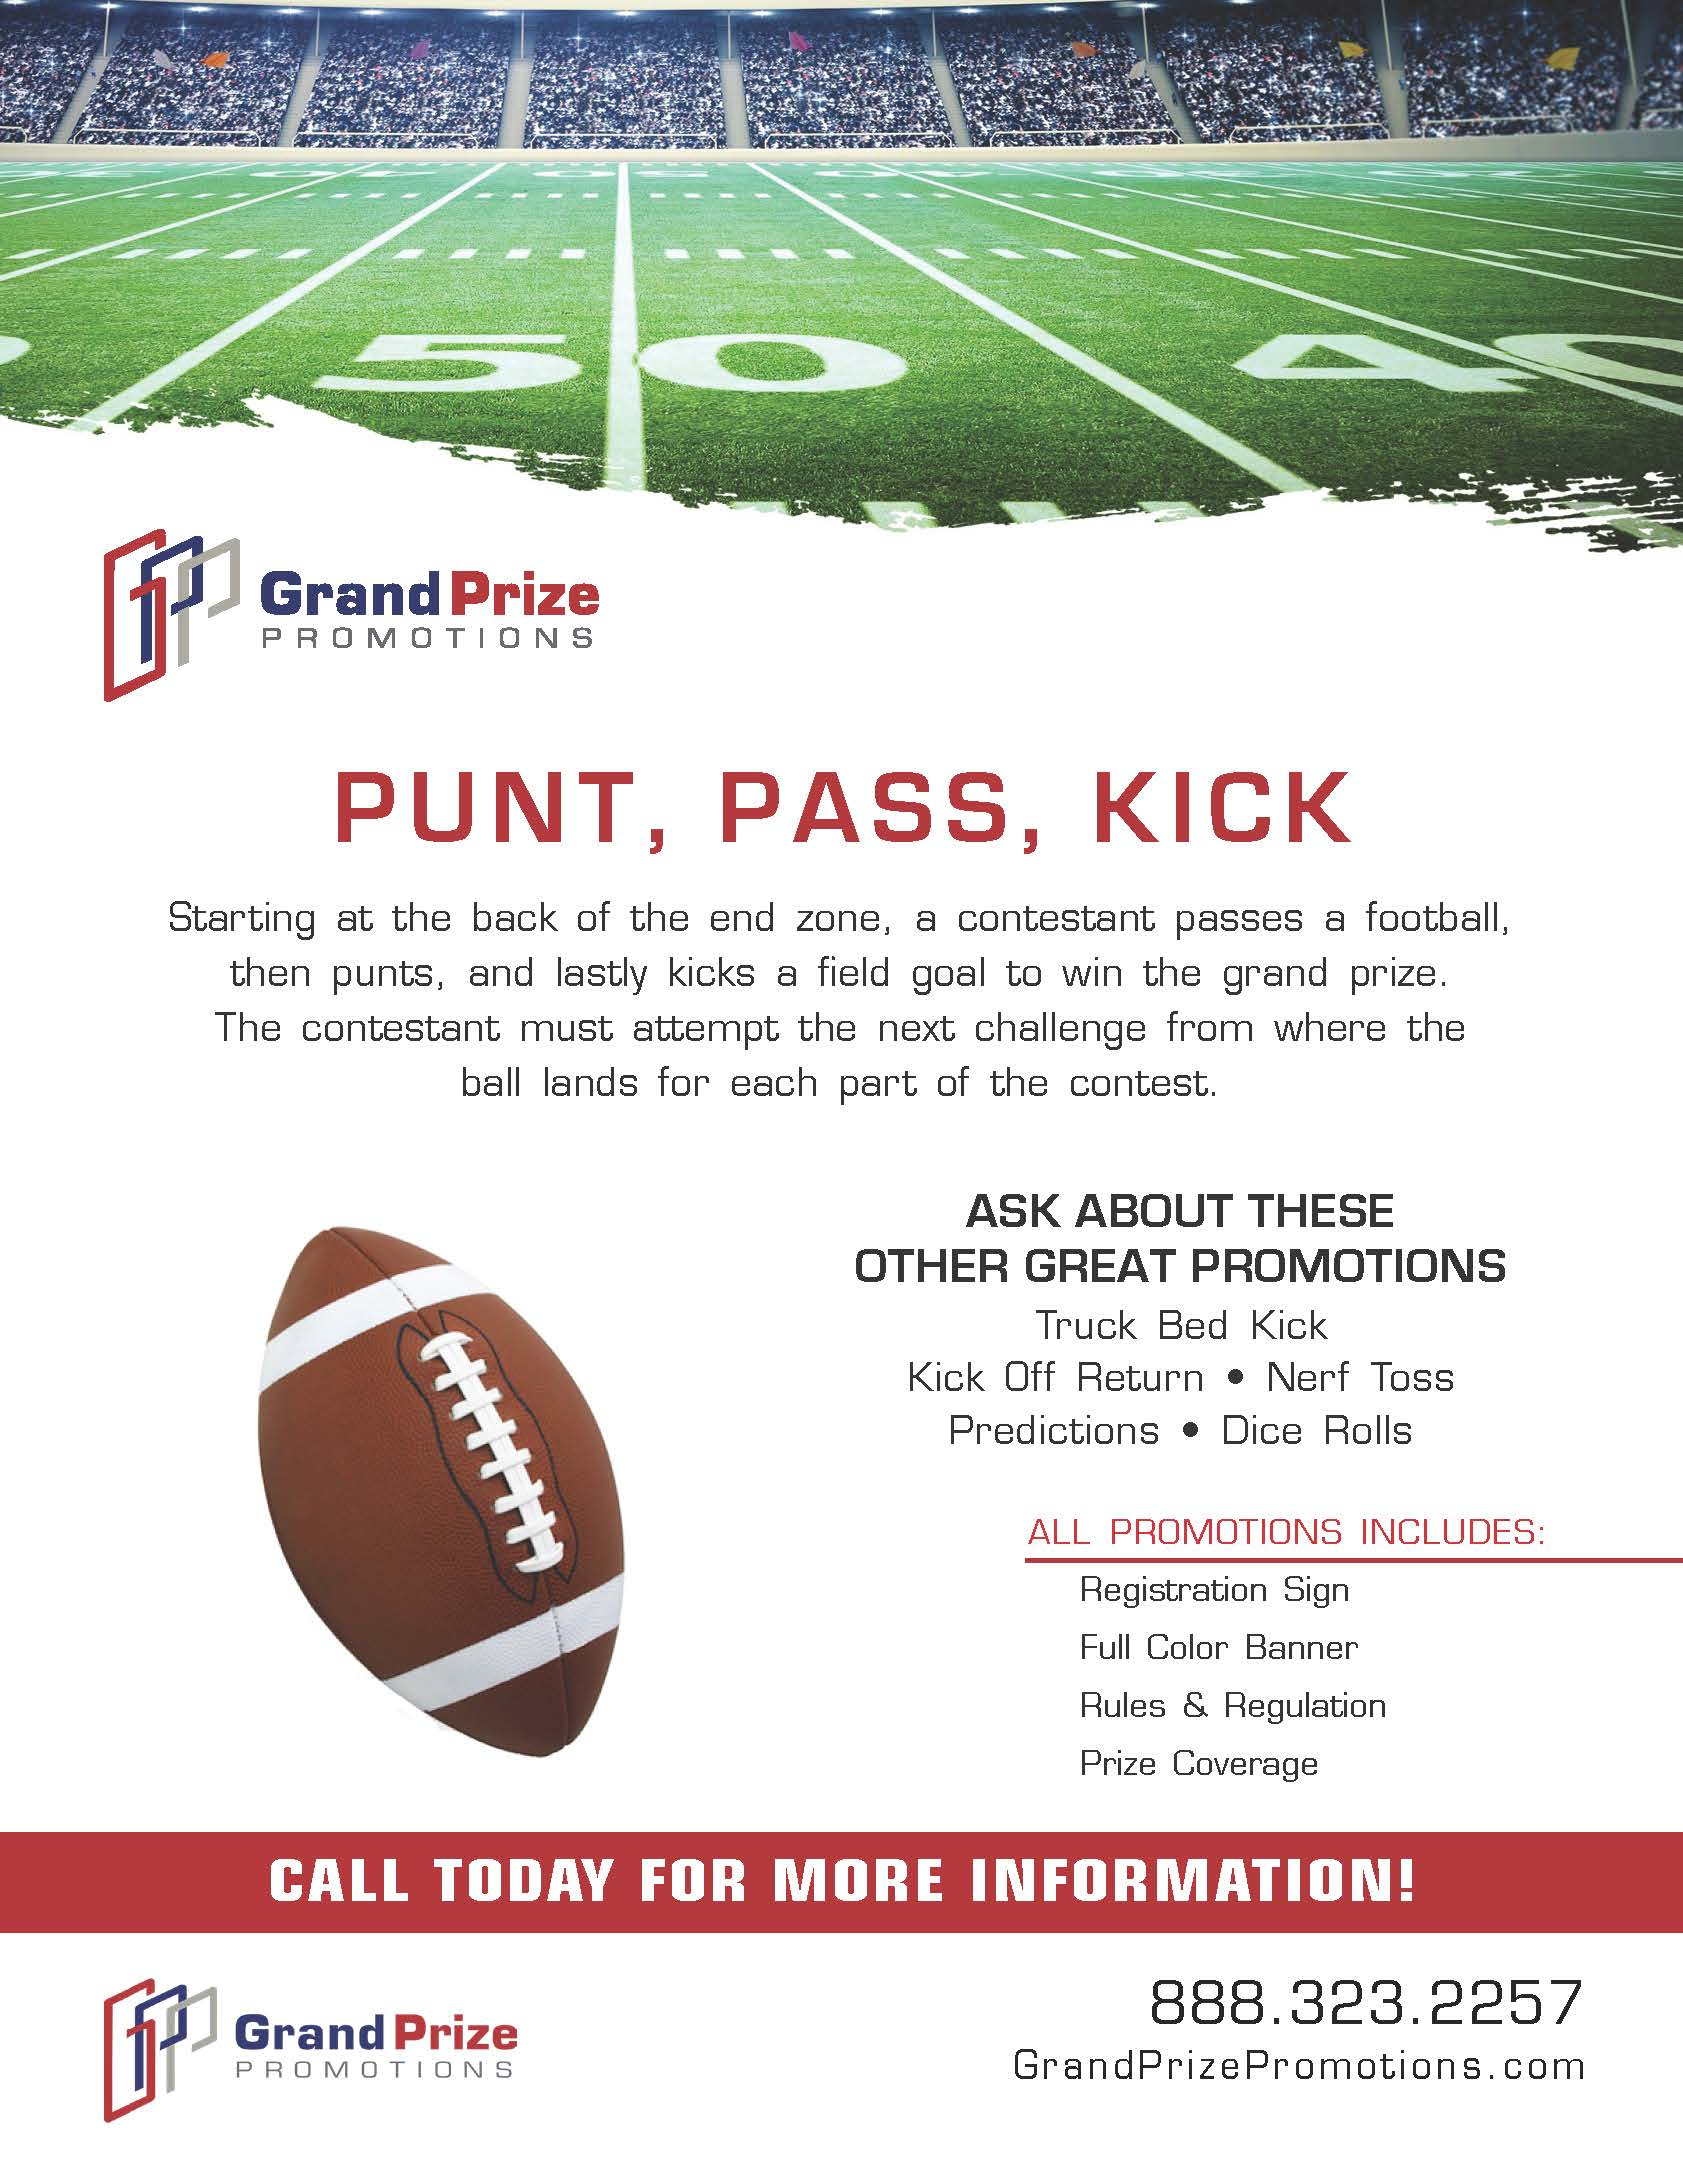 Football - Punt, Pass, Kick - Grand Prize Promotions